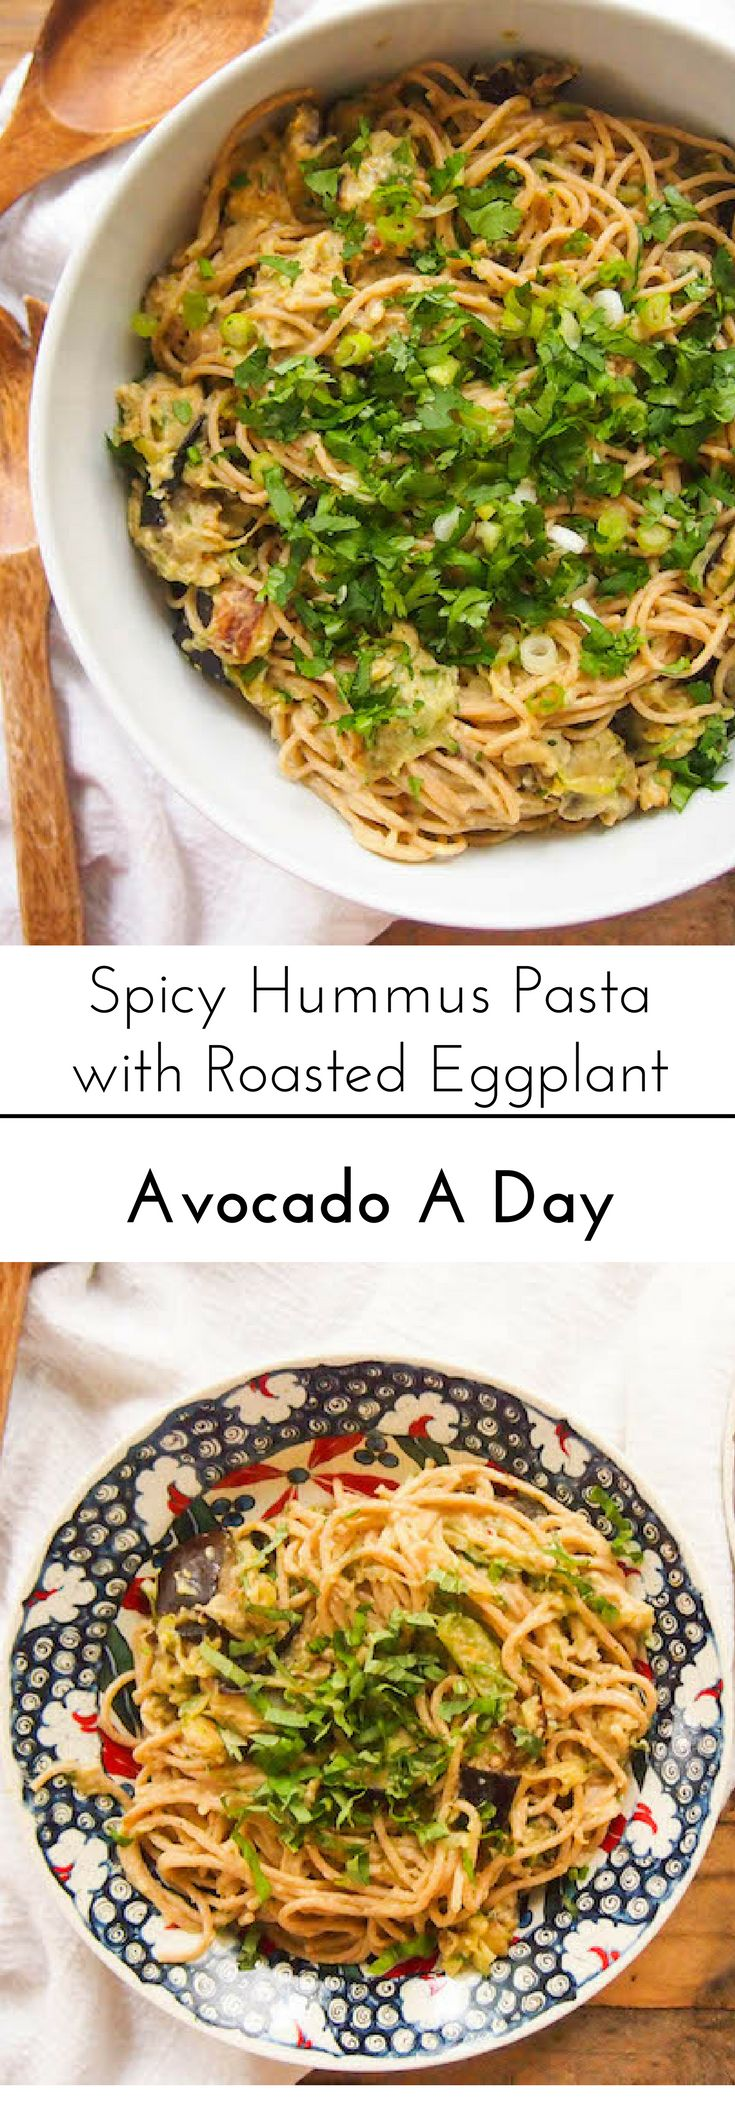 Use flavored hummus to make an easy pasta sauce for this Mediterranean inspired pasta!